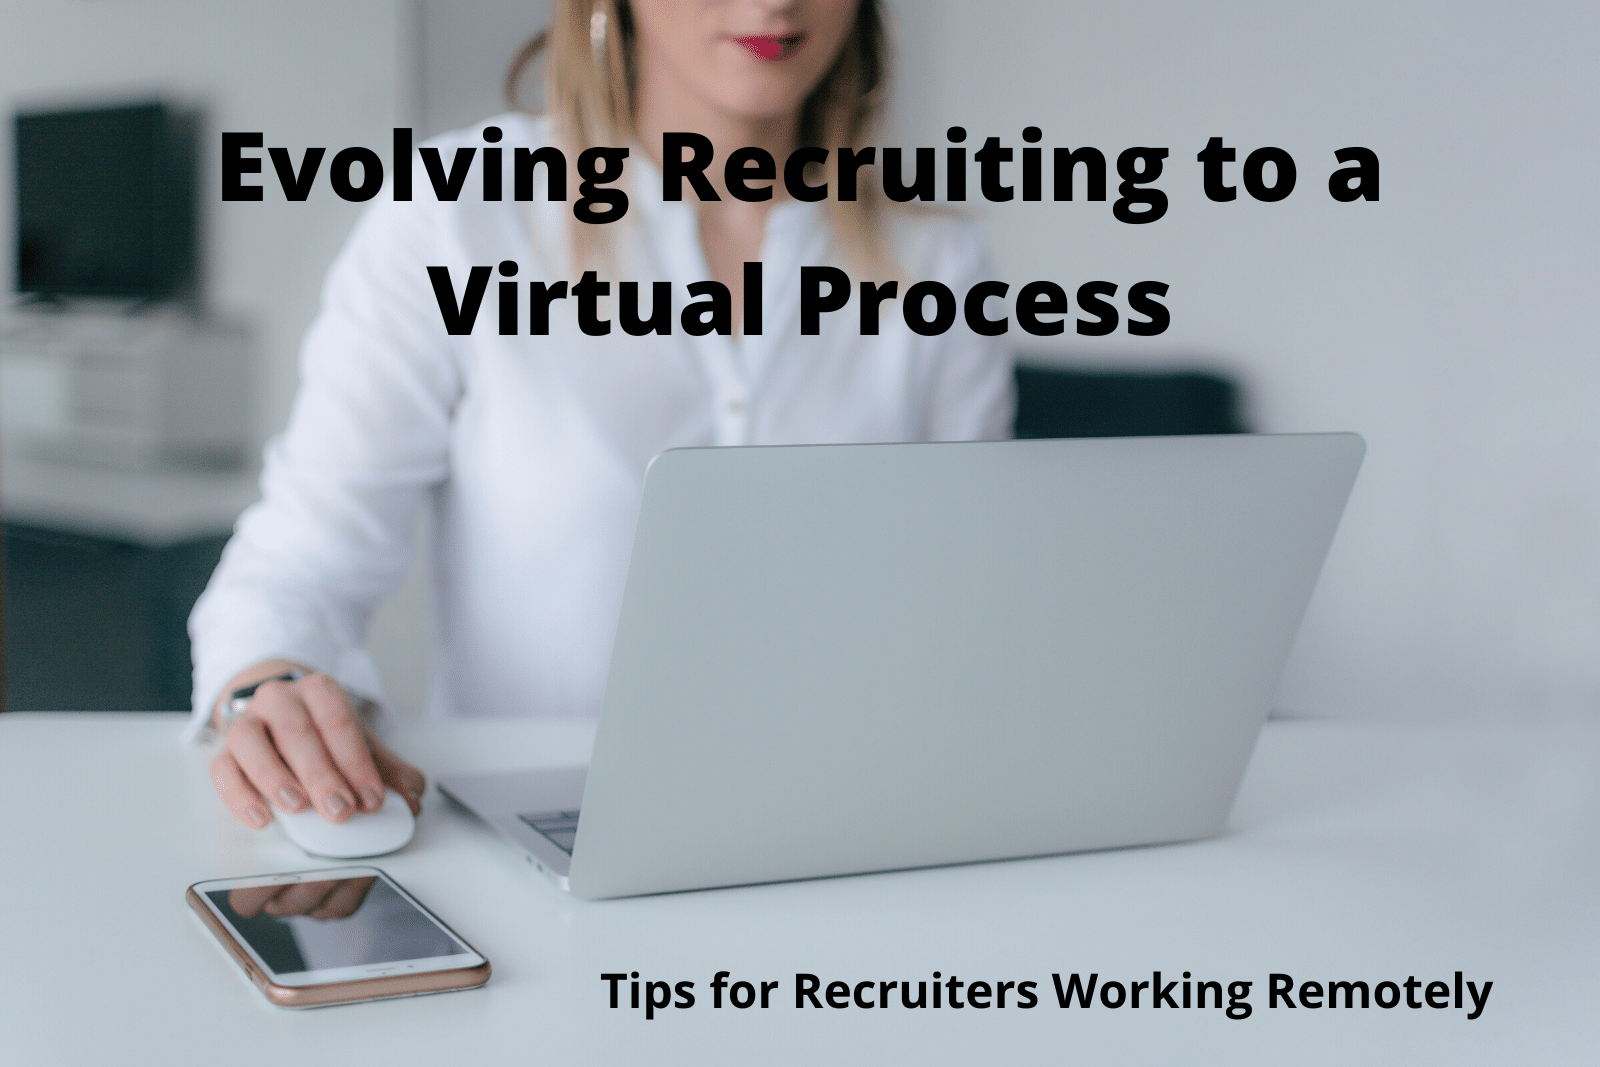 Working on computer from home evolving recruiting to a virtual process